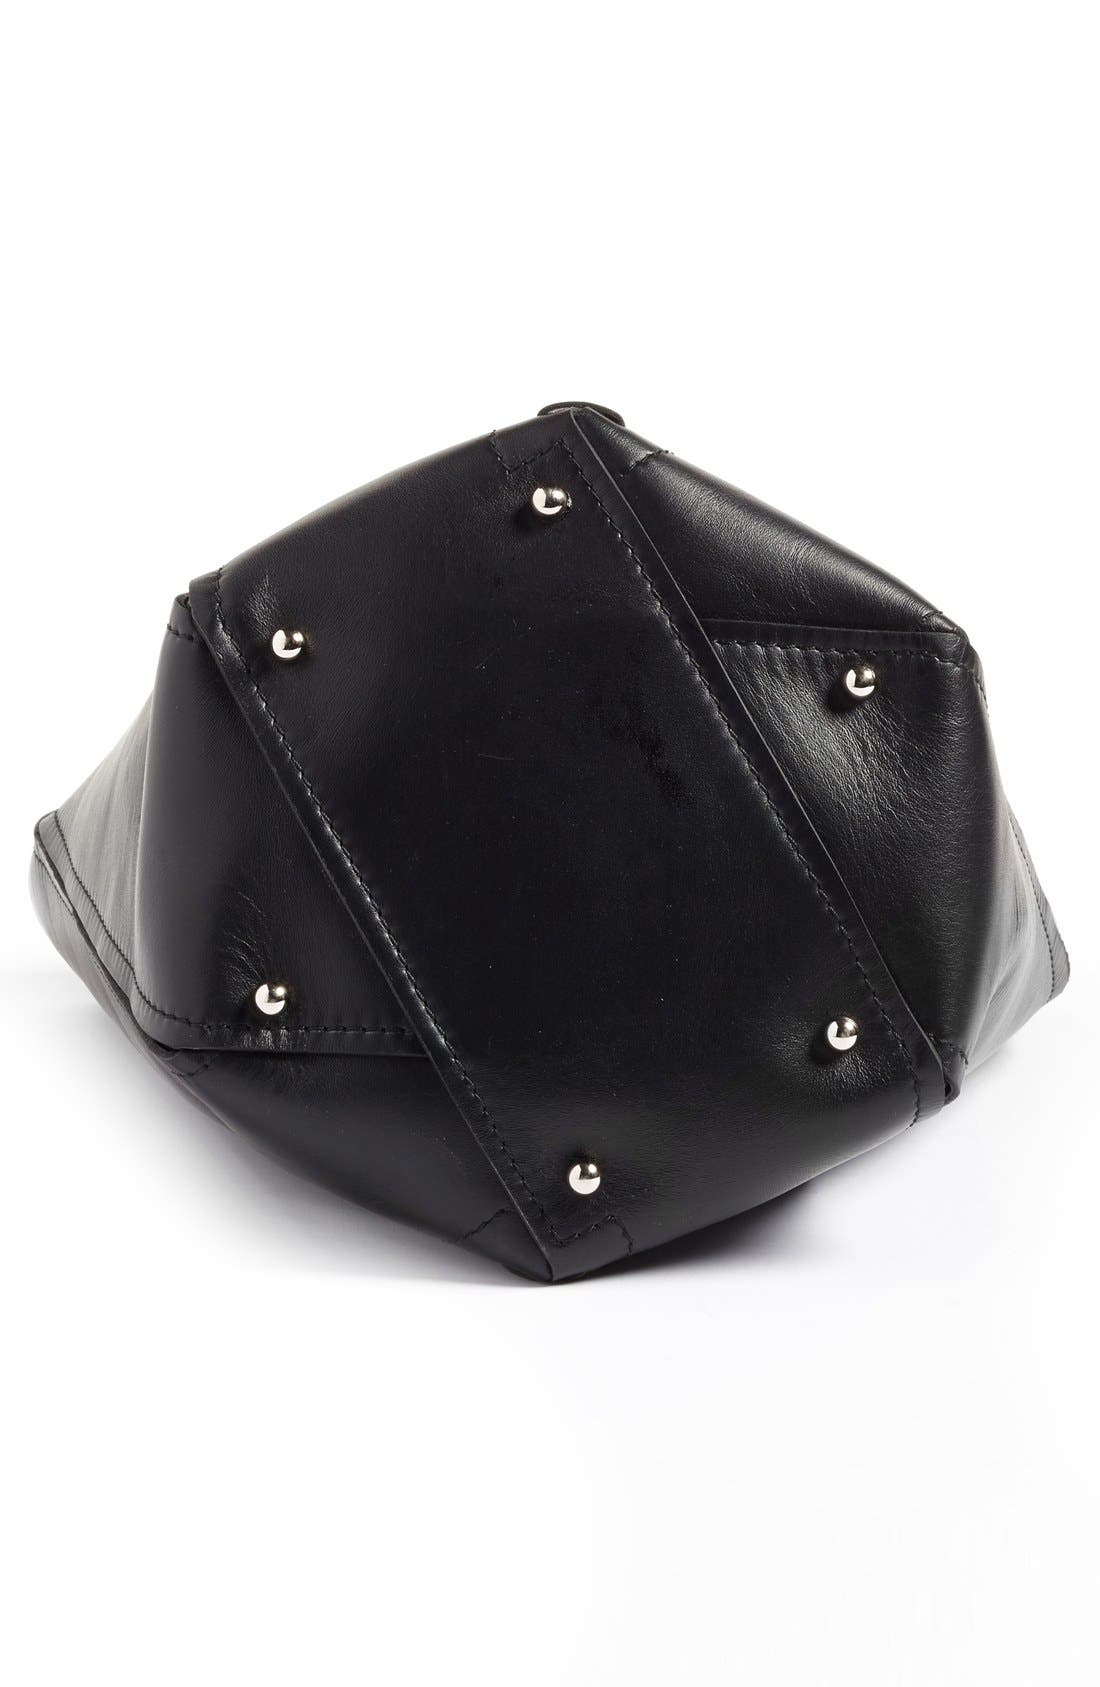 'Medium Hex' Whipstitch Leather Bucket Bag,                             Alternate thumbnail 6, color,                             001